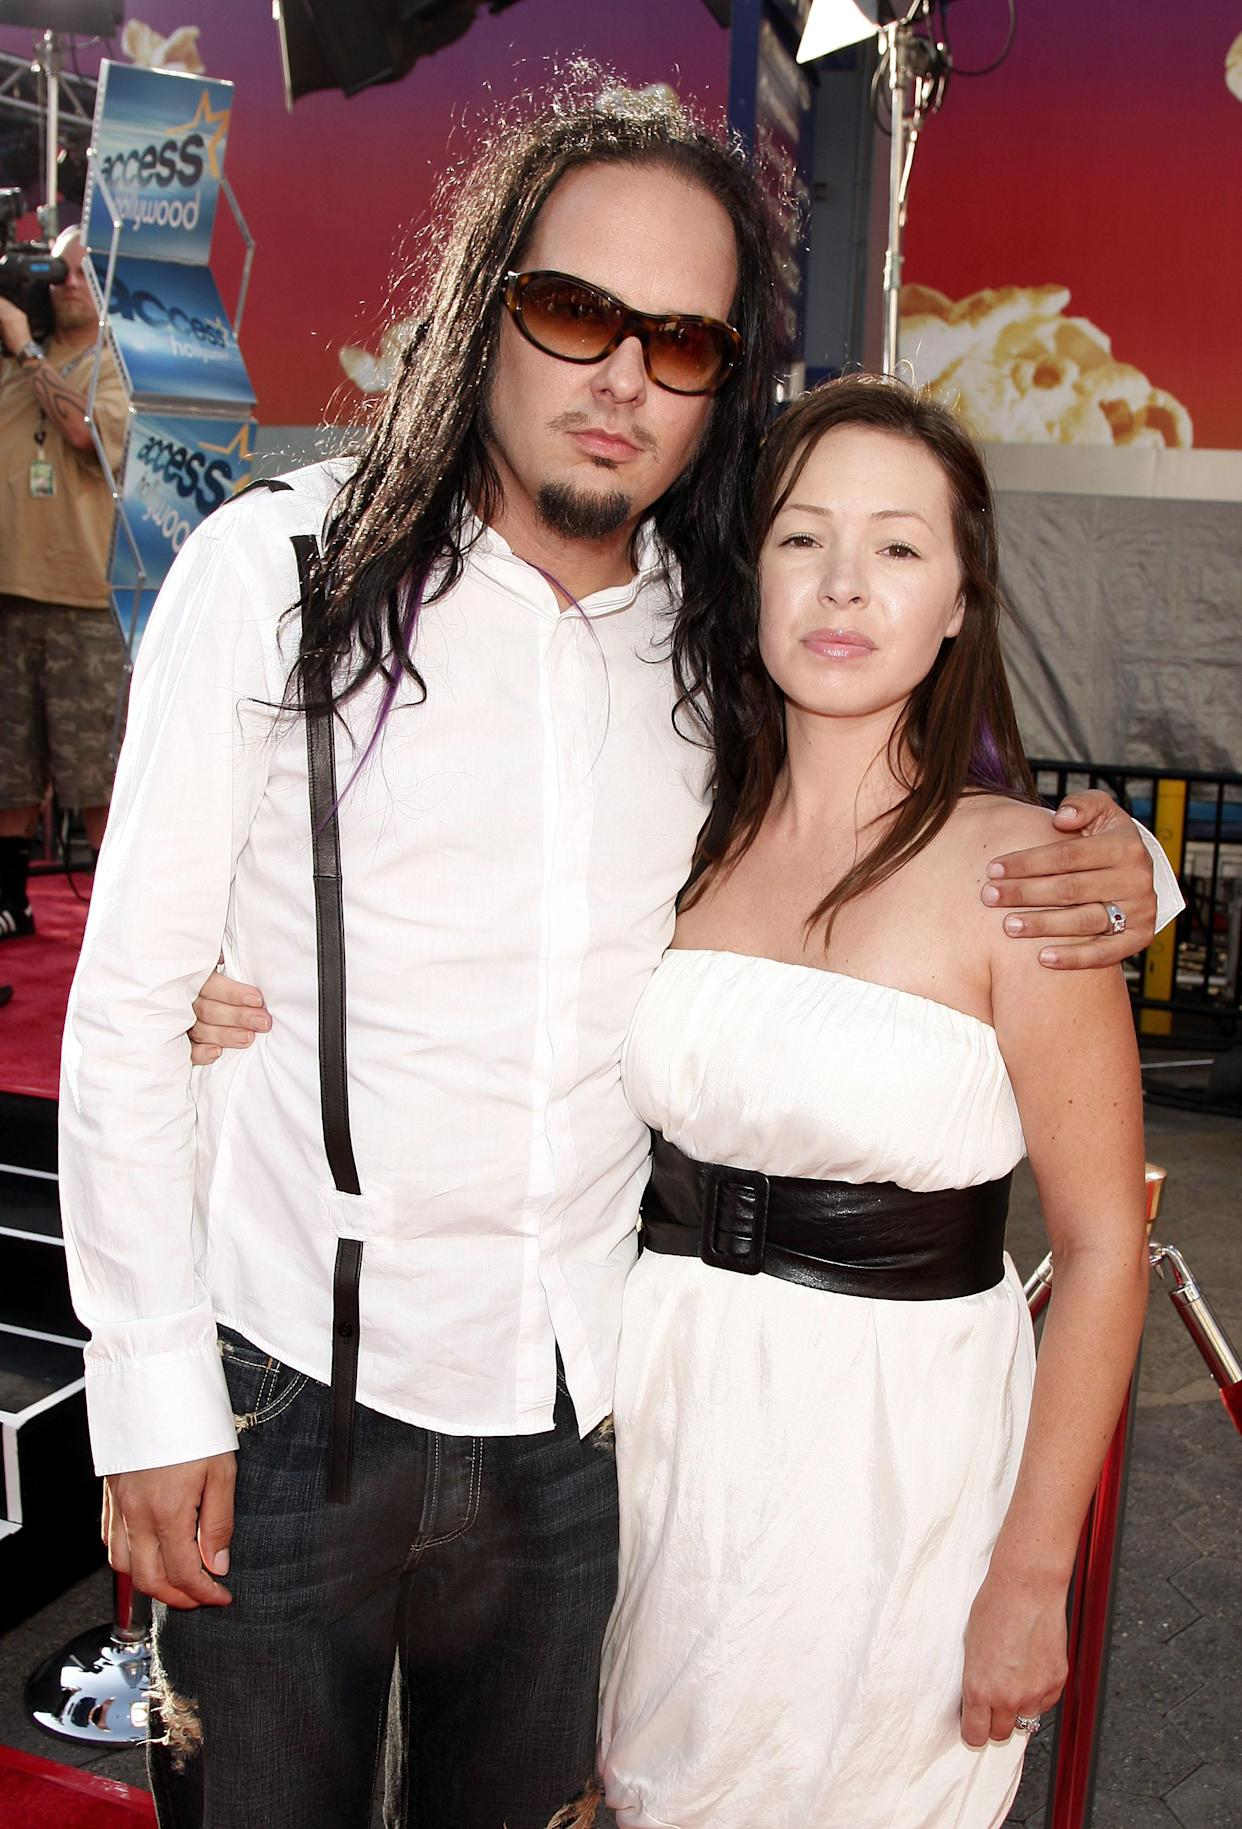 Jonathan Davis and his wife, Deven, at the premiere of <em>The Mummy: Tomb of the Dragon Emperor</em> in 2008. (Photo: Kevin Winter/Getty Images)